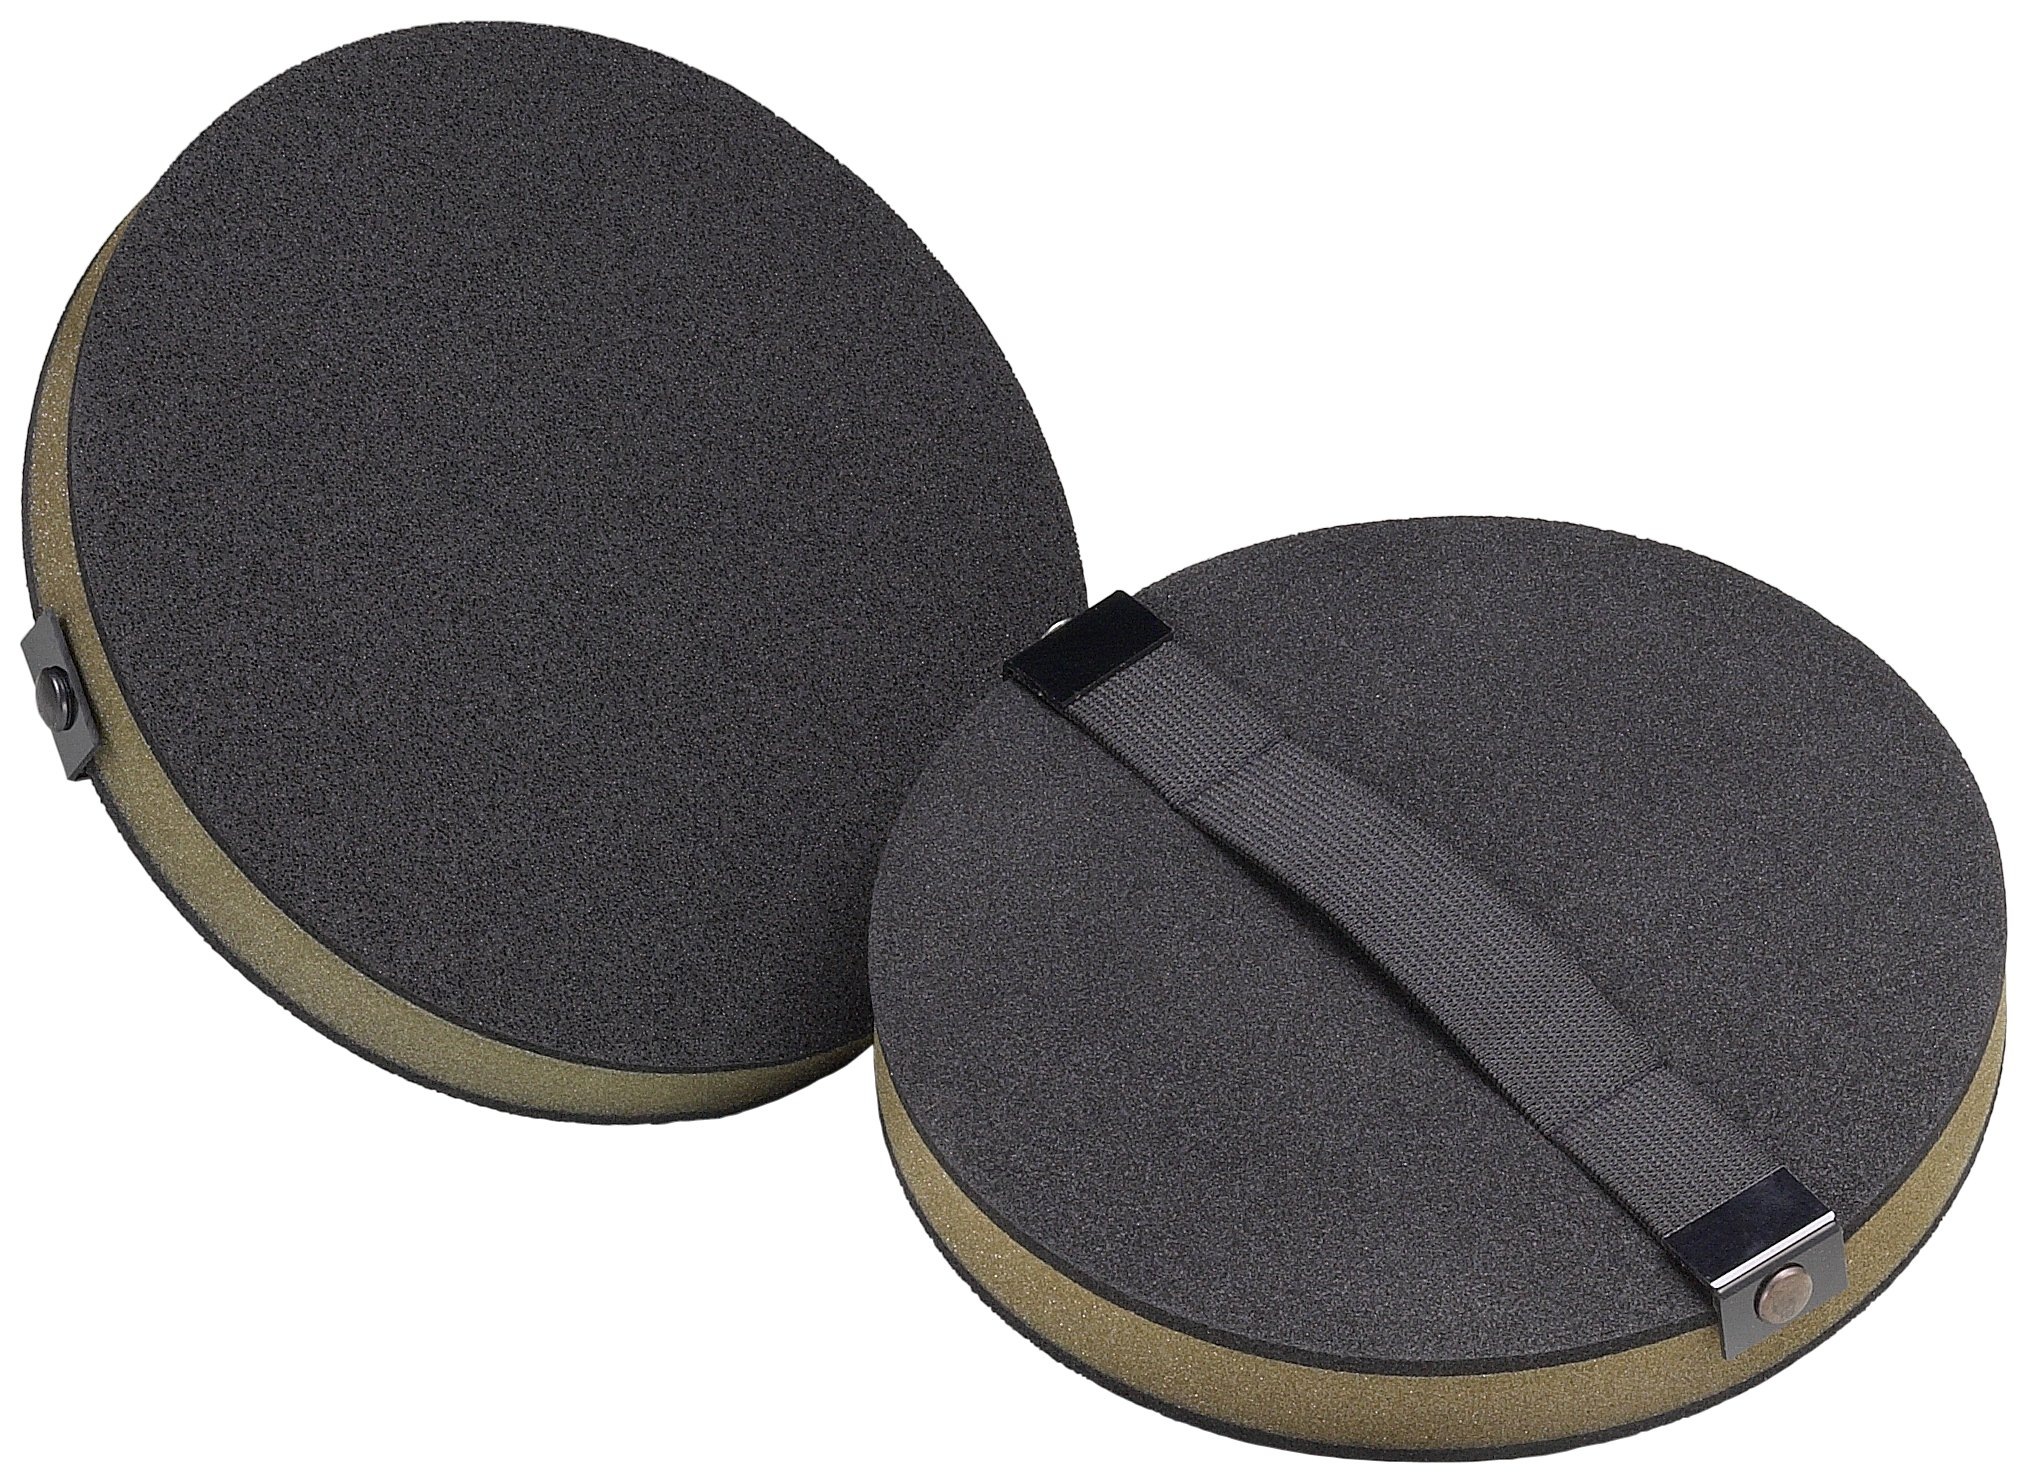 3M Screen Cloth Disc Hand Pad 82793, 8'' Diameter, 1'' Thick, Black (Pack of 10)